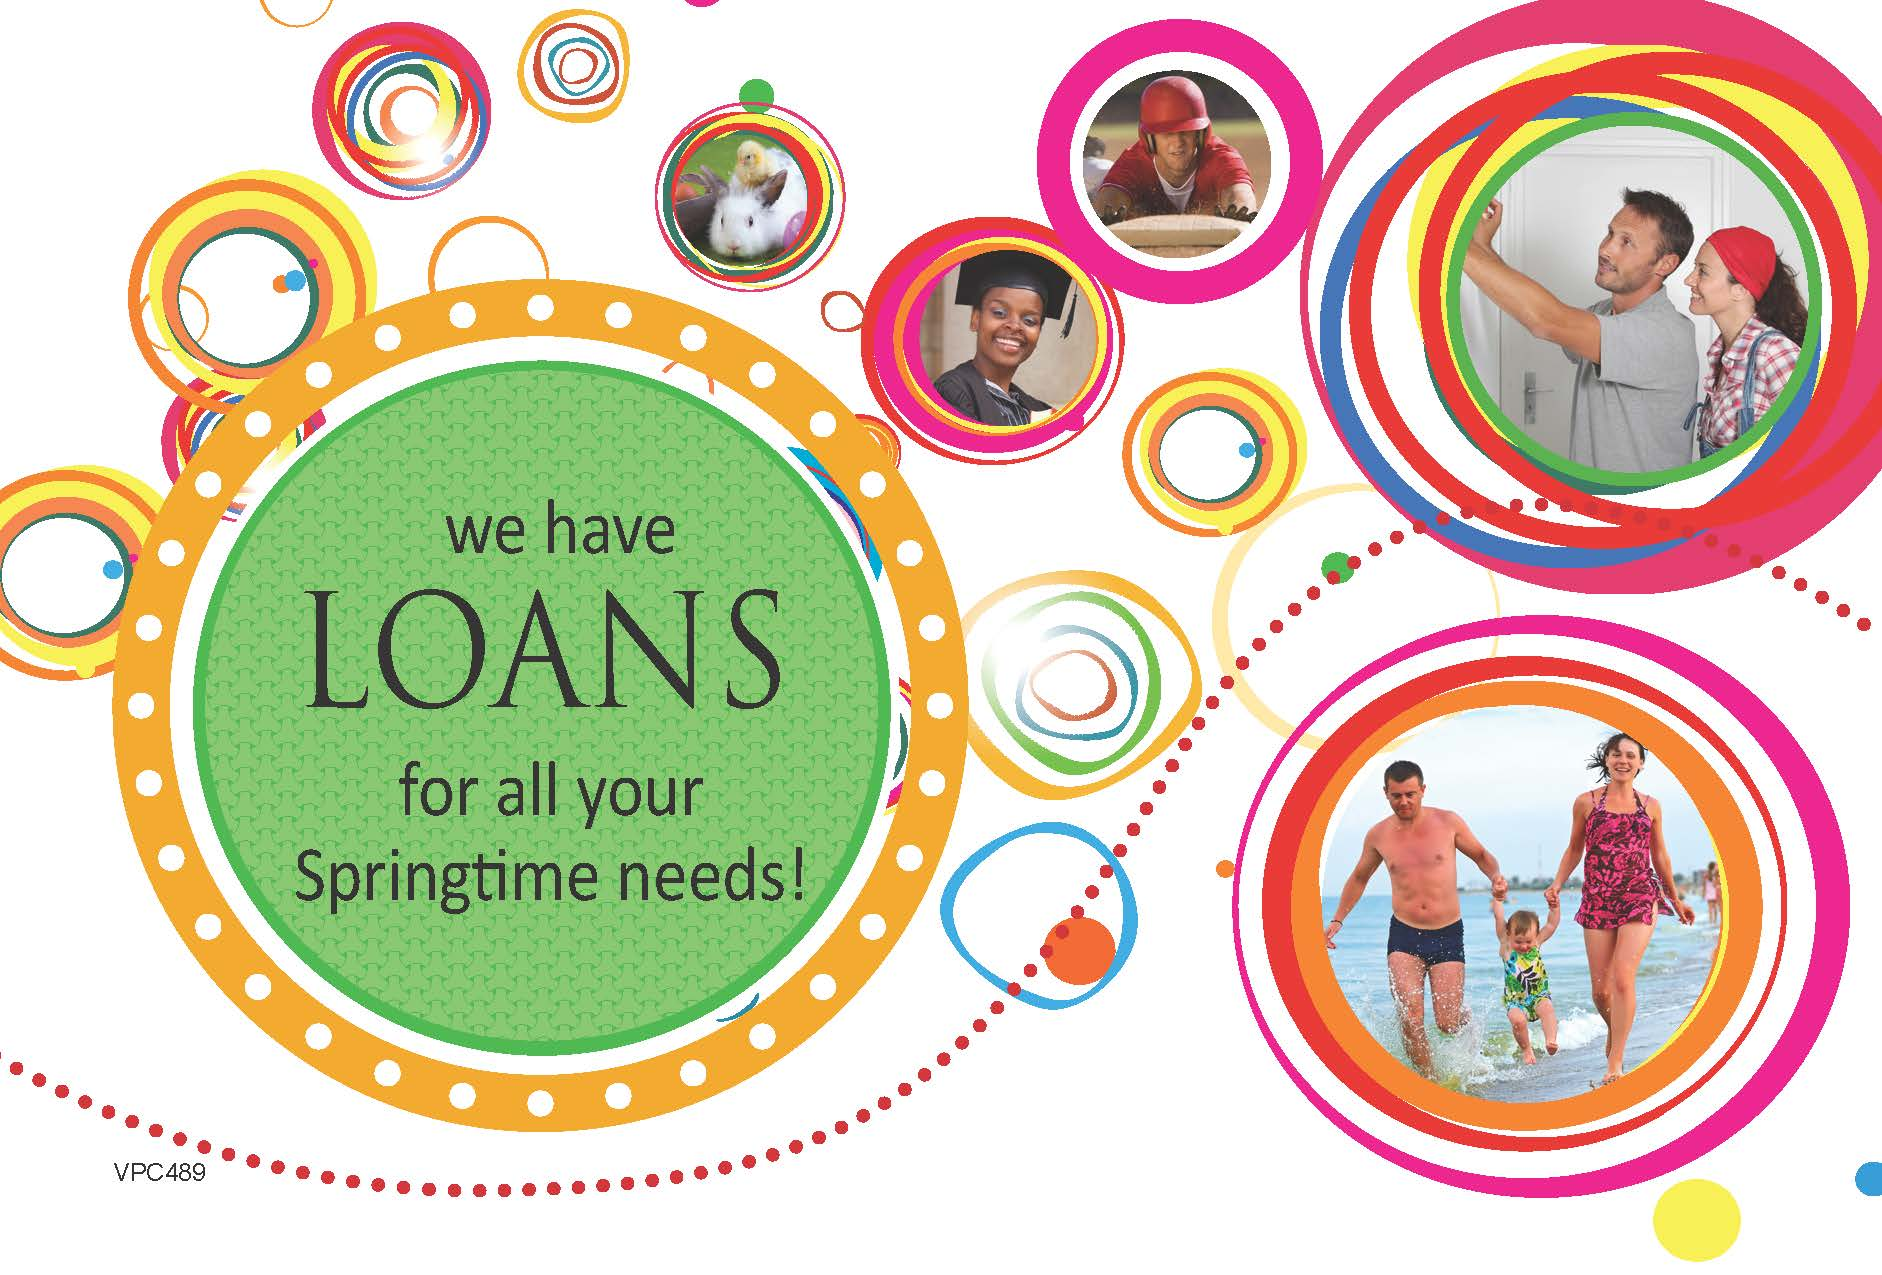 IMG-489-loans-for-all-needs.jpg